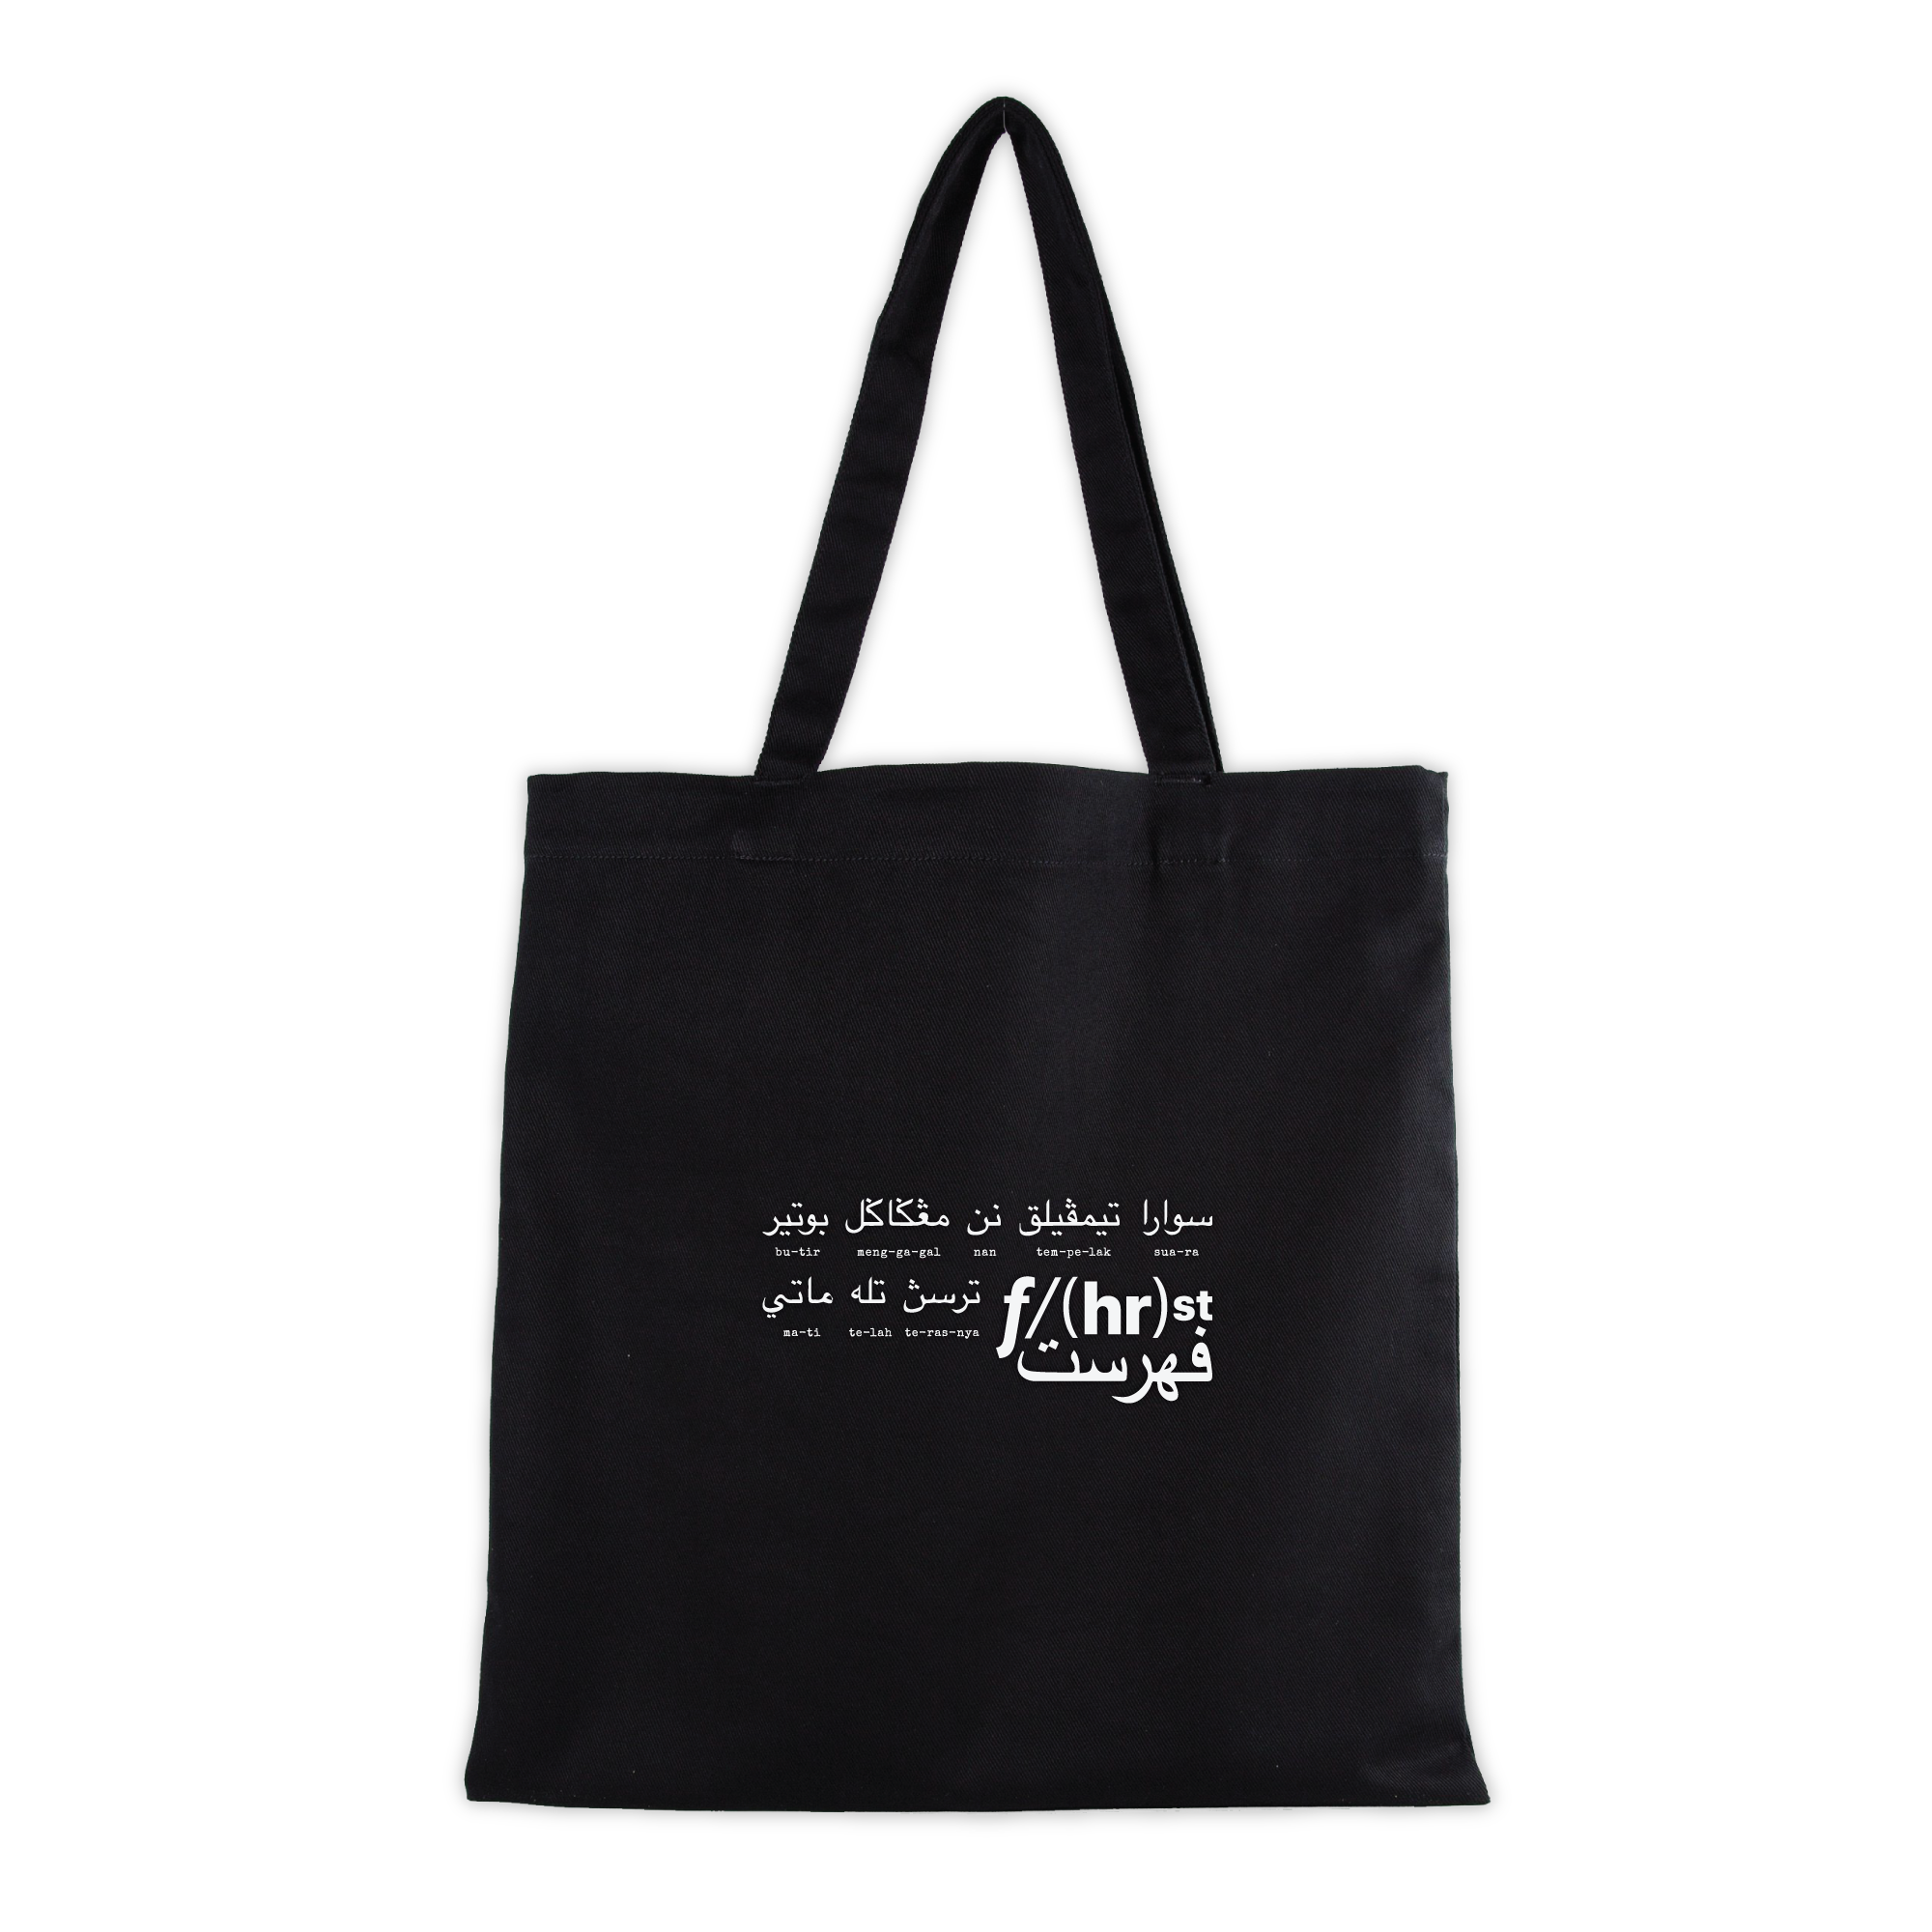 FHRST-A-Tote-Bag.png